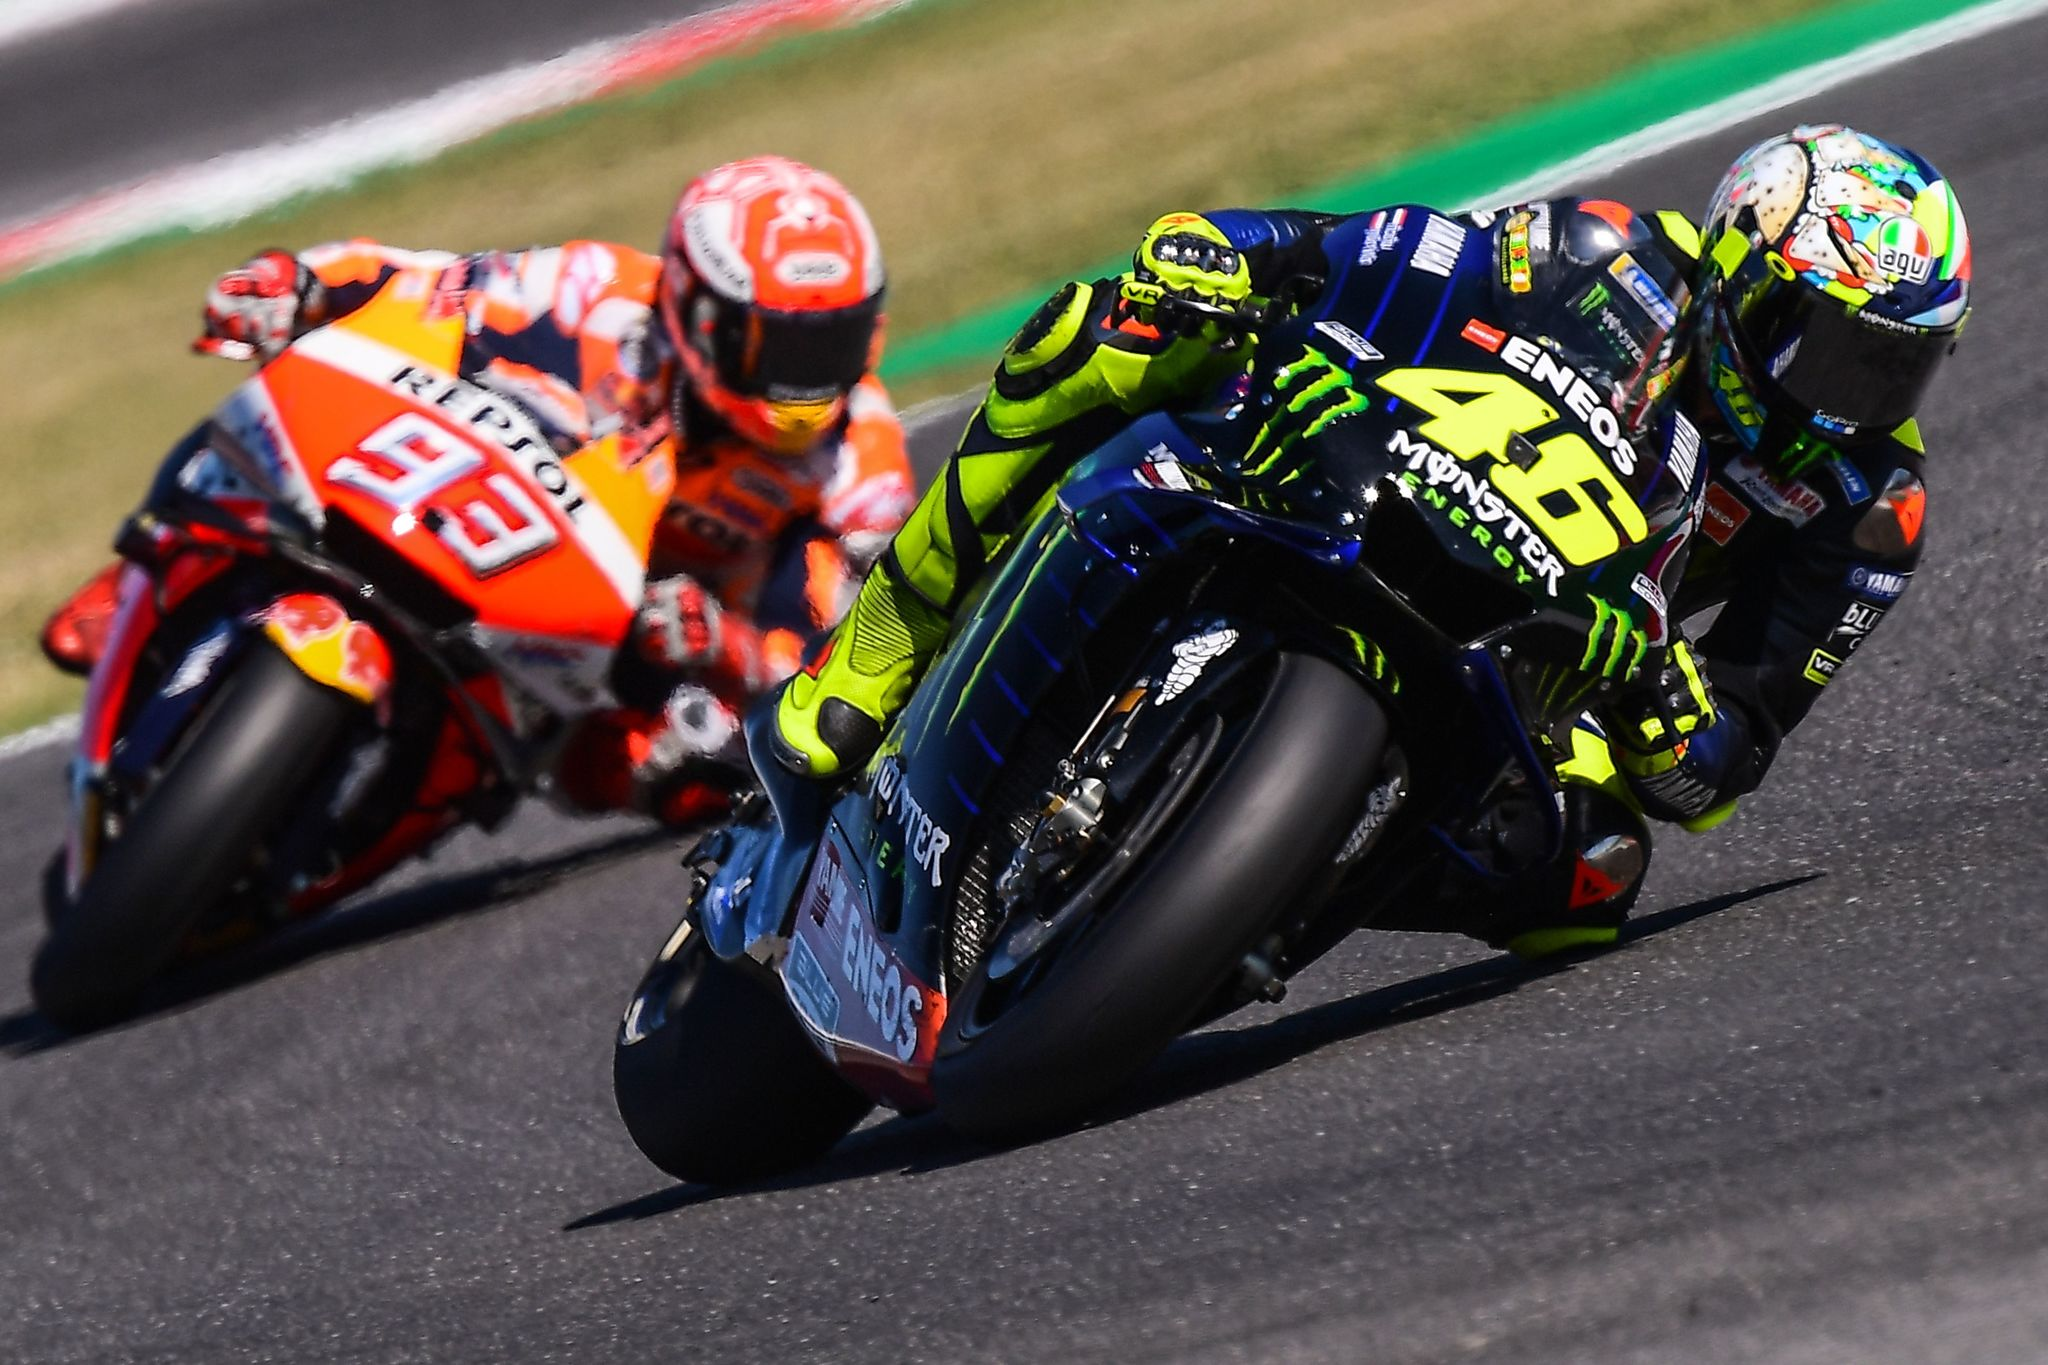 TOPSHOT - Monster Energy Yamaha Italian rider, Valentino <HIT>Rossi</HIT> (R) and Repsol Honda Team Spanish rider, Marc <HIT>Marquez</HIT> steer their motorbikes during the Q2 qualifying session ahead of the San Marino MotoGP Grand Prix race at the Misano World Circuit Marco Simoncelli on September 14, 2019. (Photo by Marco Bertorello / AFP)